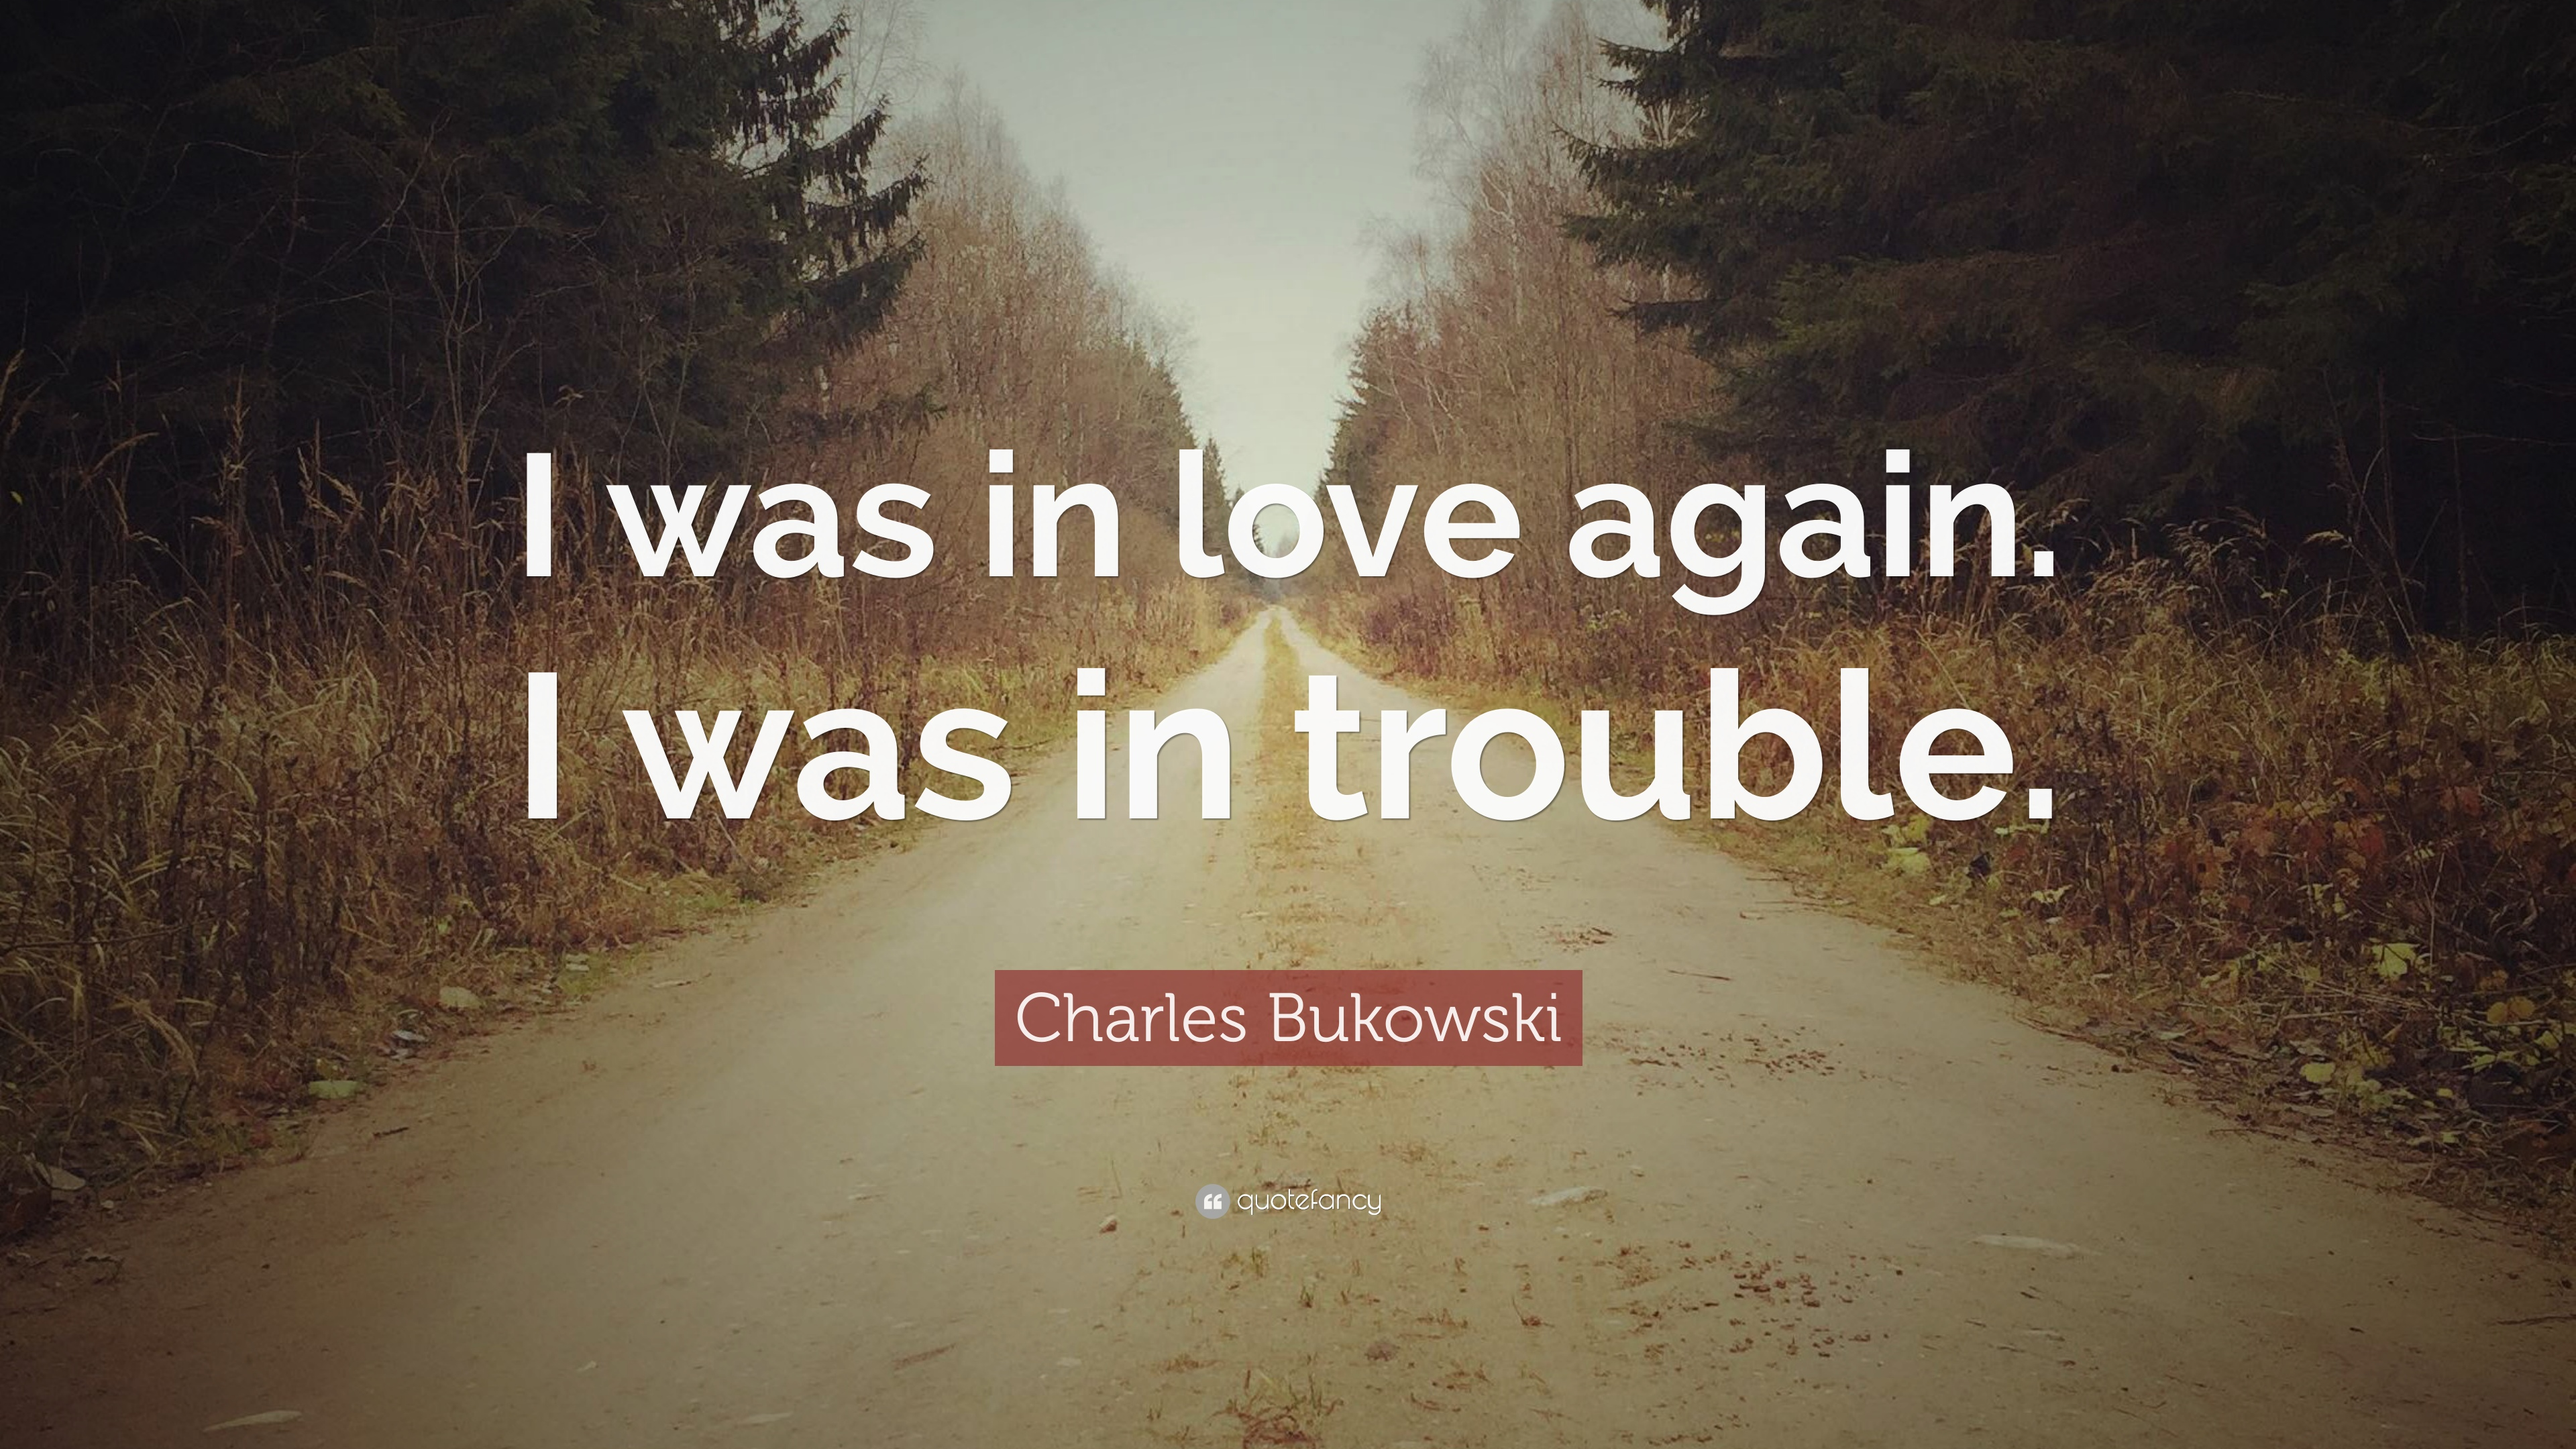 Charles Bukowski Quote: I was in love again. I was in